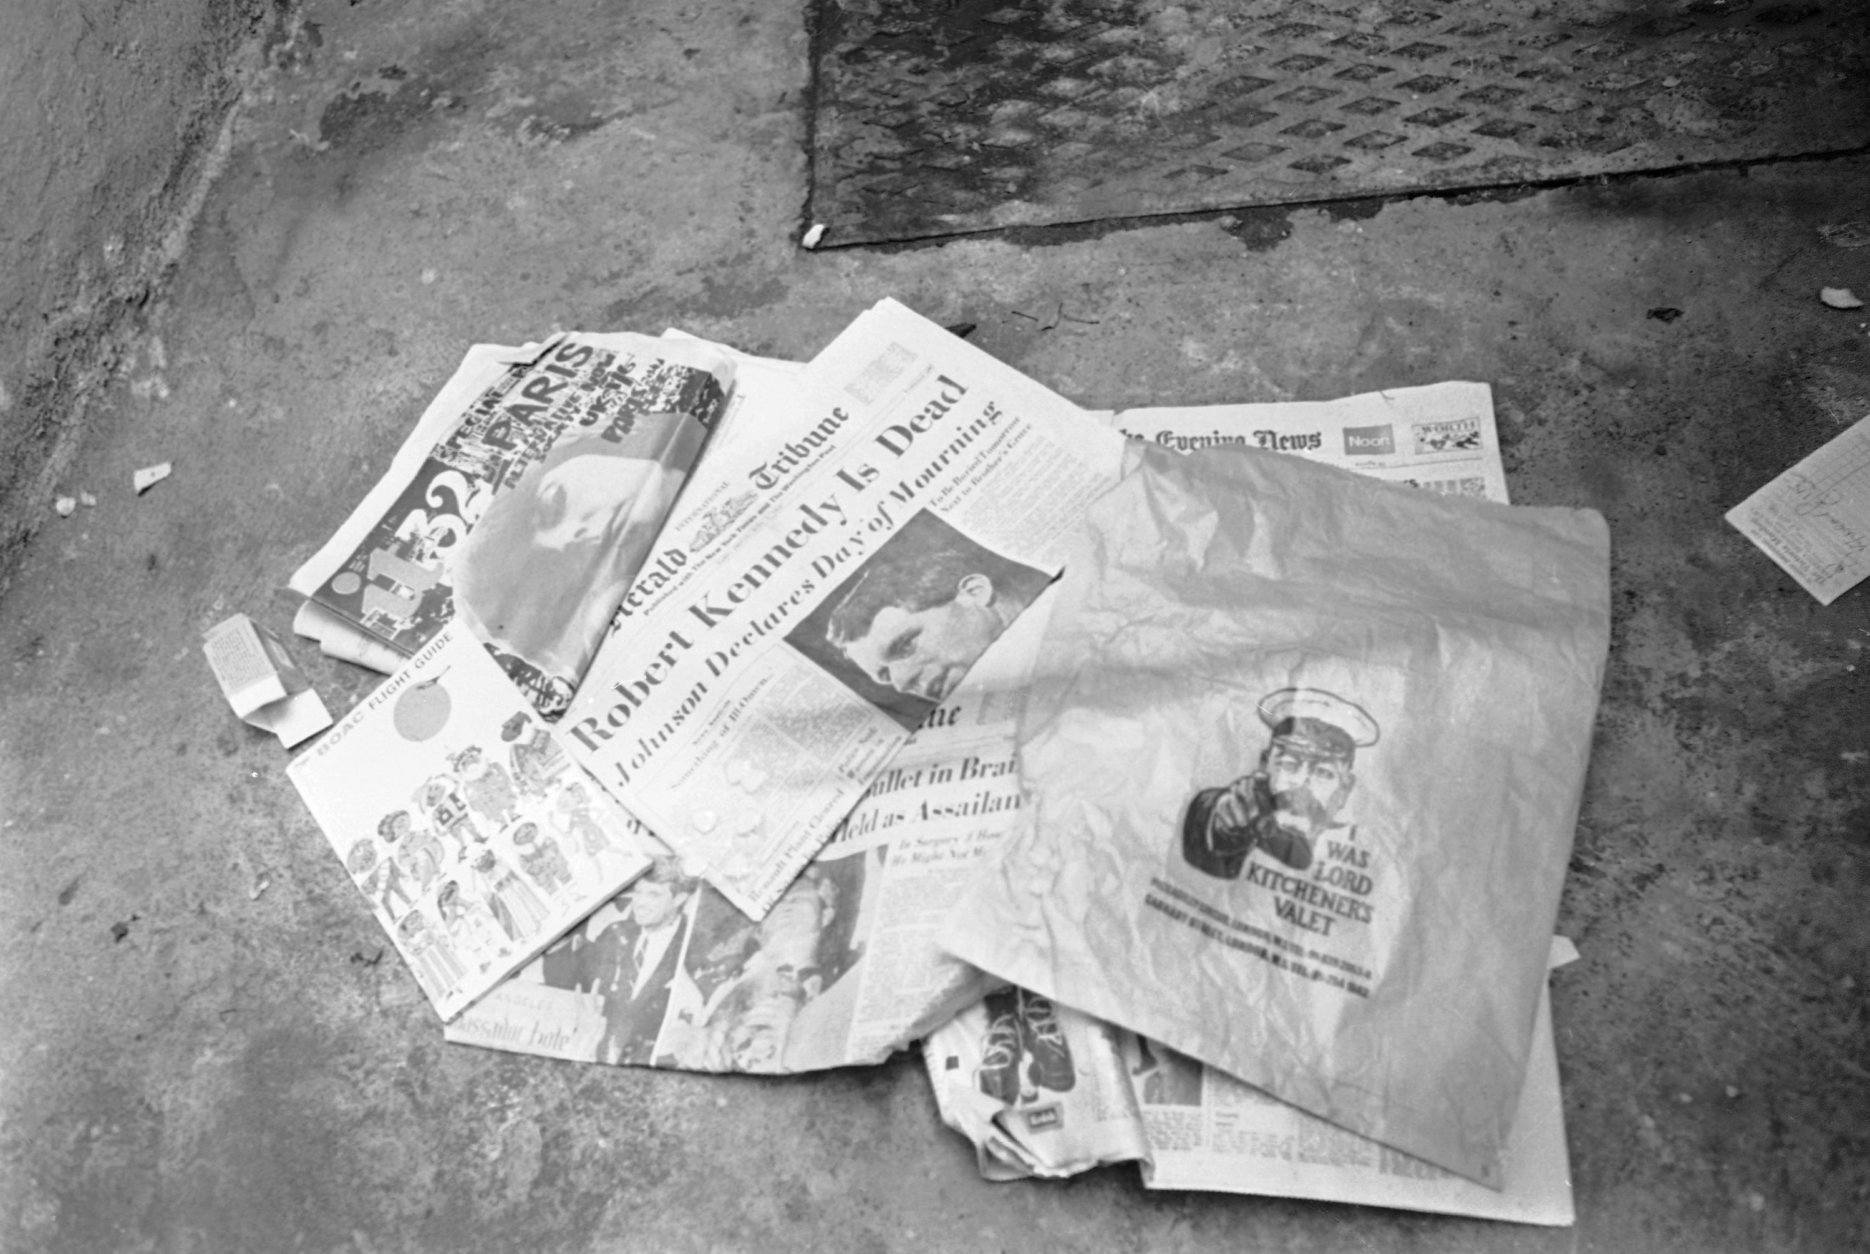 Newspapers, paper bag and an air travel guide which were found in the bed room of the Pax Hotel, where a man identifying himself as Ramon George Sneyd, are lying near a dust bin outside the hotel in Pimlico, London, on June 10, 1968. The proprietor of the hotel, Mrs. Anna Thomas said that Ramon George Sneyd lived in her hotel from June 5 to June 8. Ramon George Sneyd was arrested at London's airport on June 8 for carrying a false passport and a loaded gun. United States Assistant Attorney General is seeking a speedy extradition for the man believed to be James Earl Ray, accused assassin of Dr. Martin Luther King. James Earl Ray had a preliminary hearing in court and was remanded in custody without bail until June 18. (AP Photo/F. Tewkesbury)